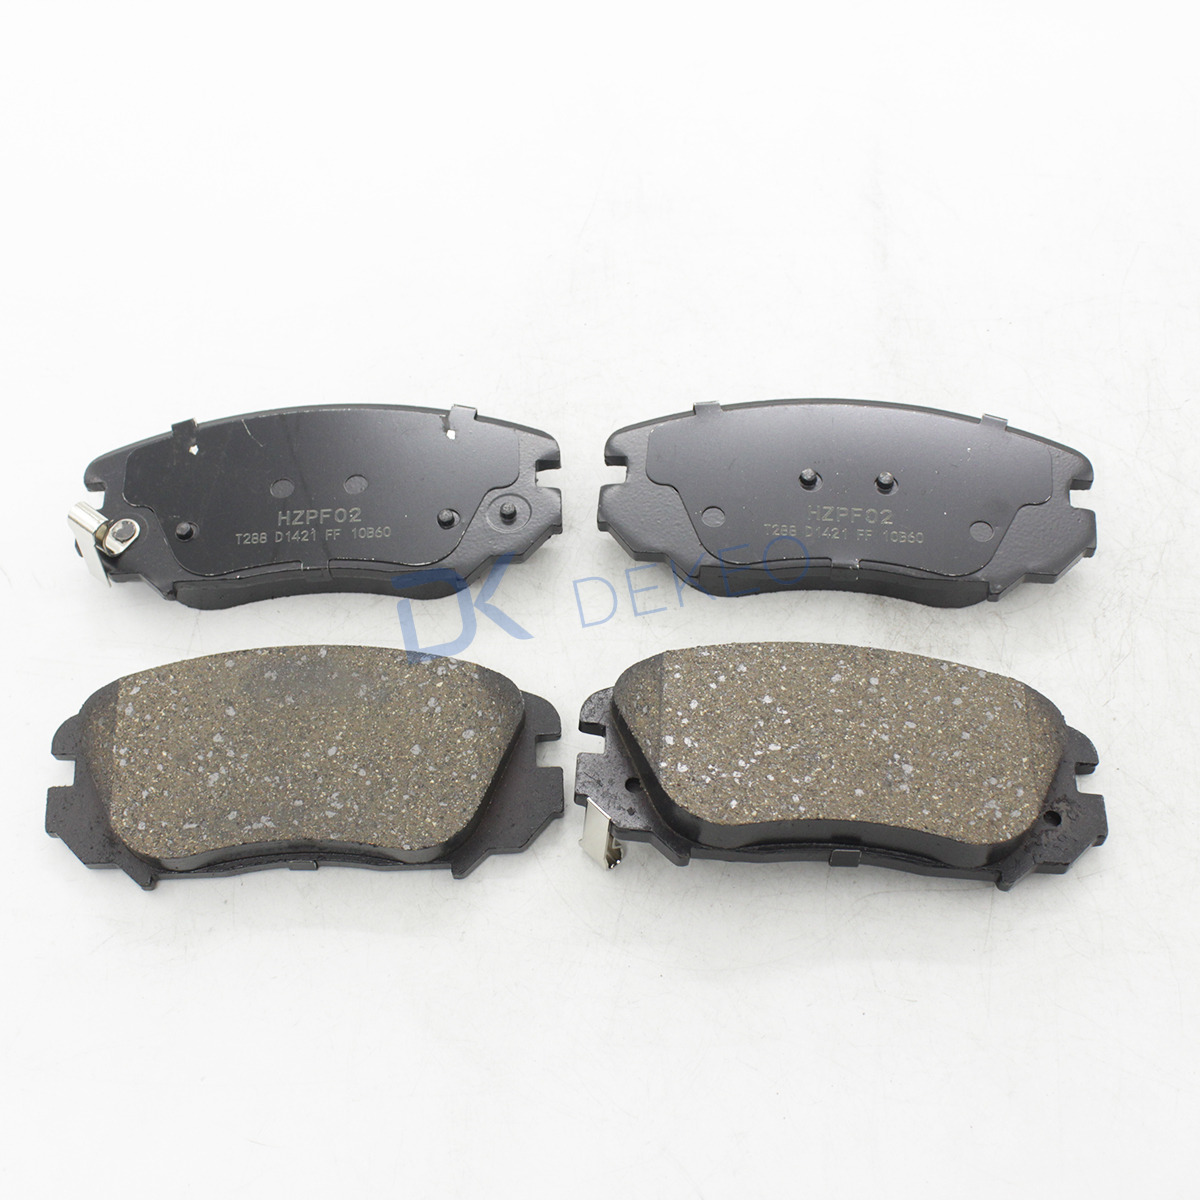 DEKEO Car Brake Pads Front For GMC TERRAIN Buick Regal (Fifth Generation) Chevrolet Mai Ruibao 1605185 13237753 13312895 4PCS|Car Brake Pads & Shoes| |  - title=